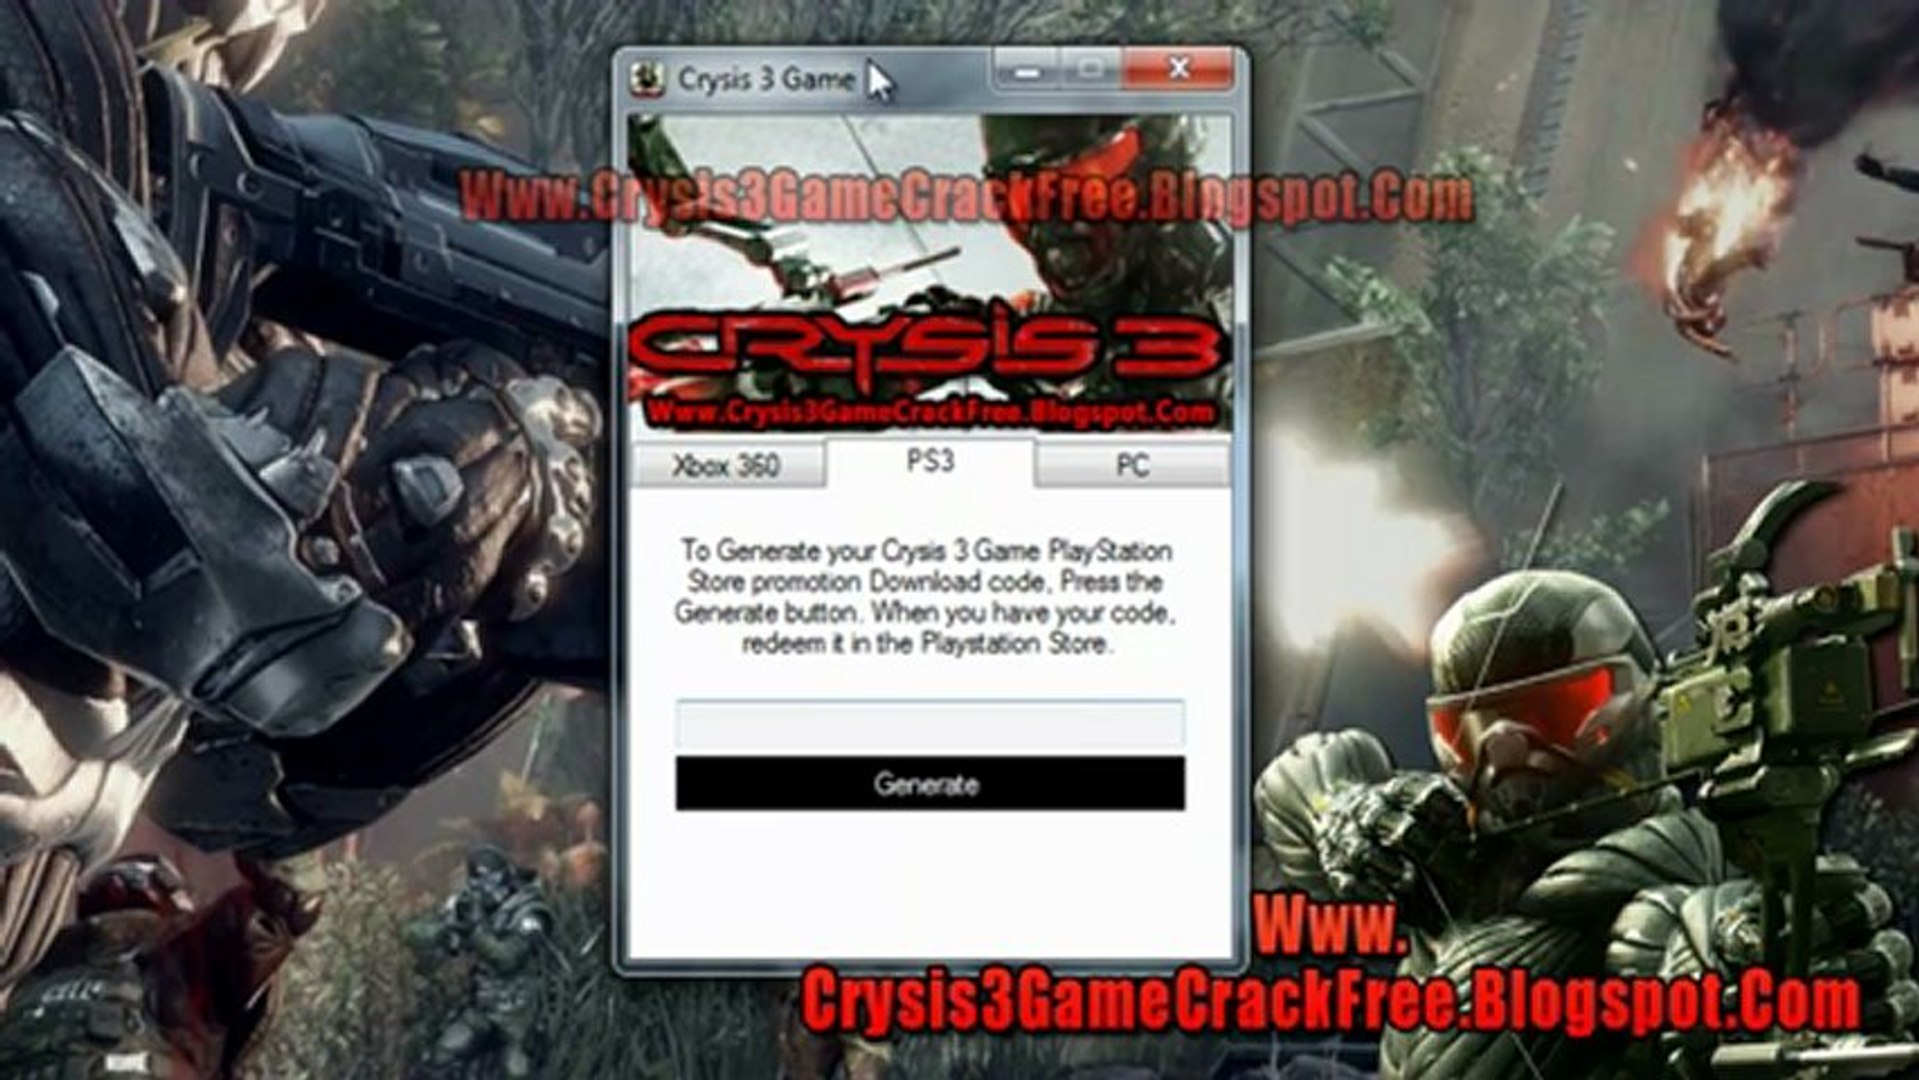 How to Install Crysis 3 Game Free on Xbox 360 PS3 And PC - video dailymotion